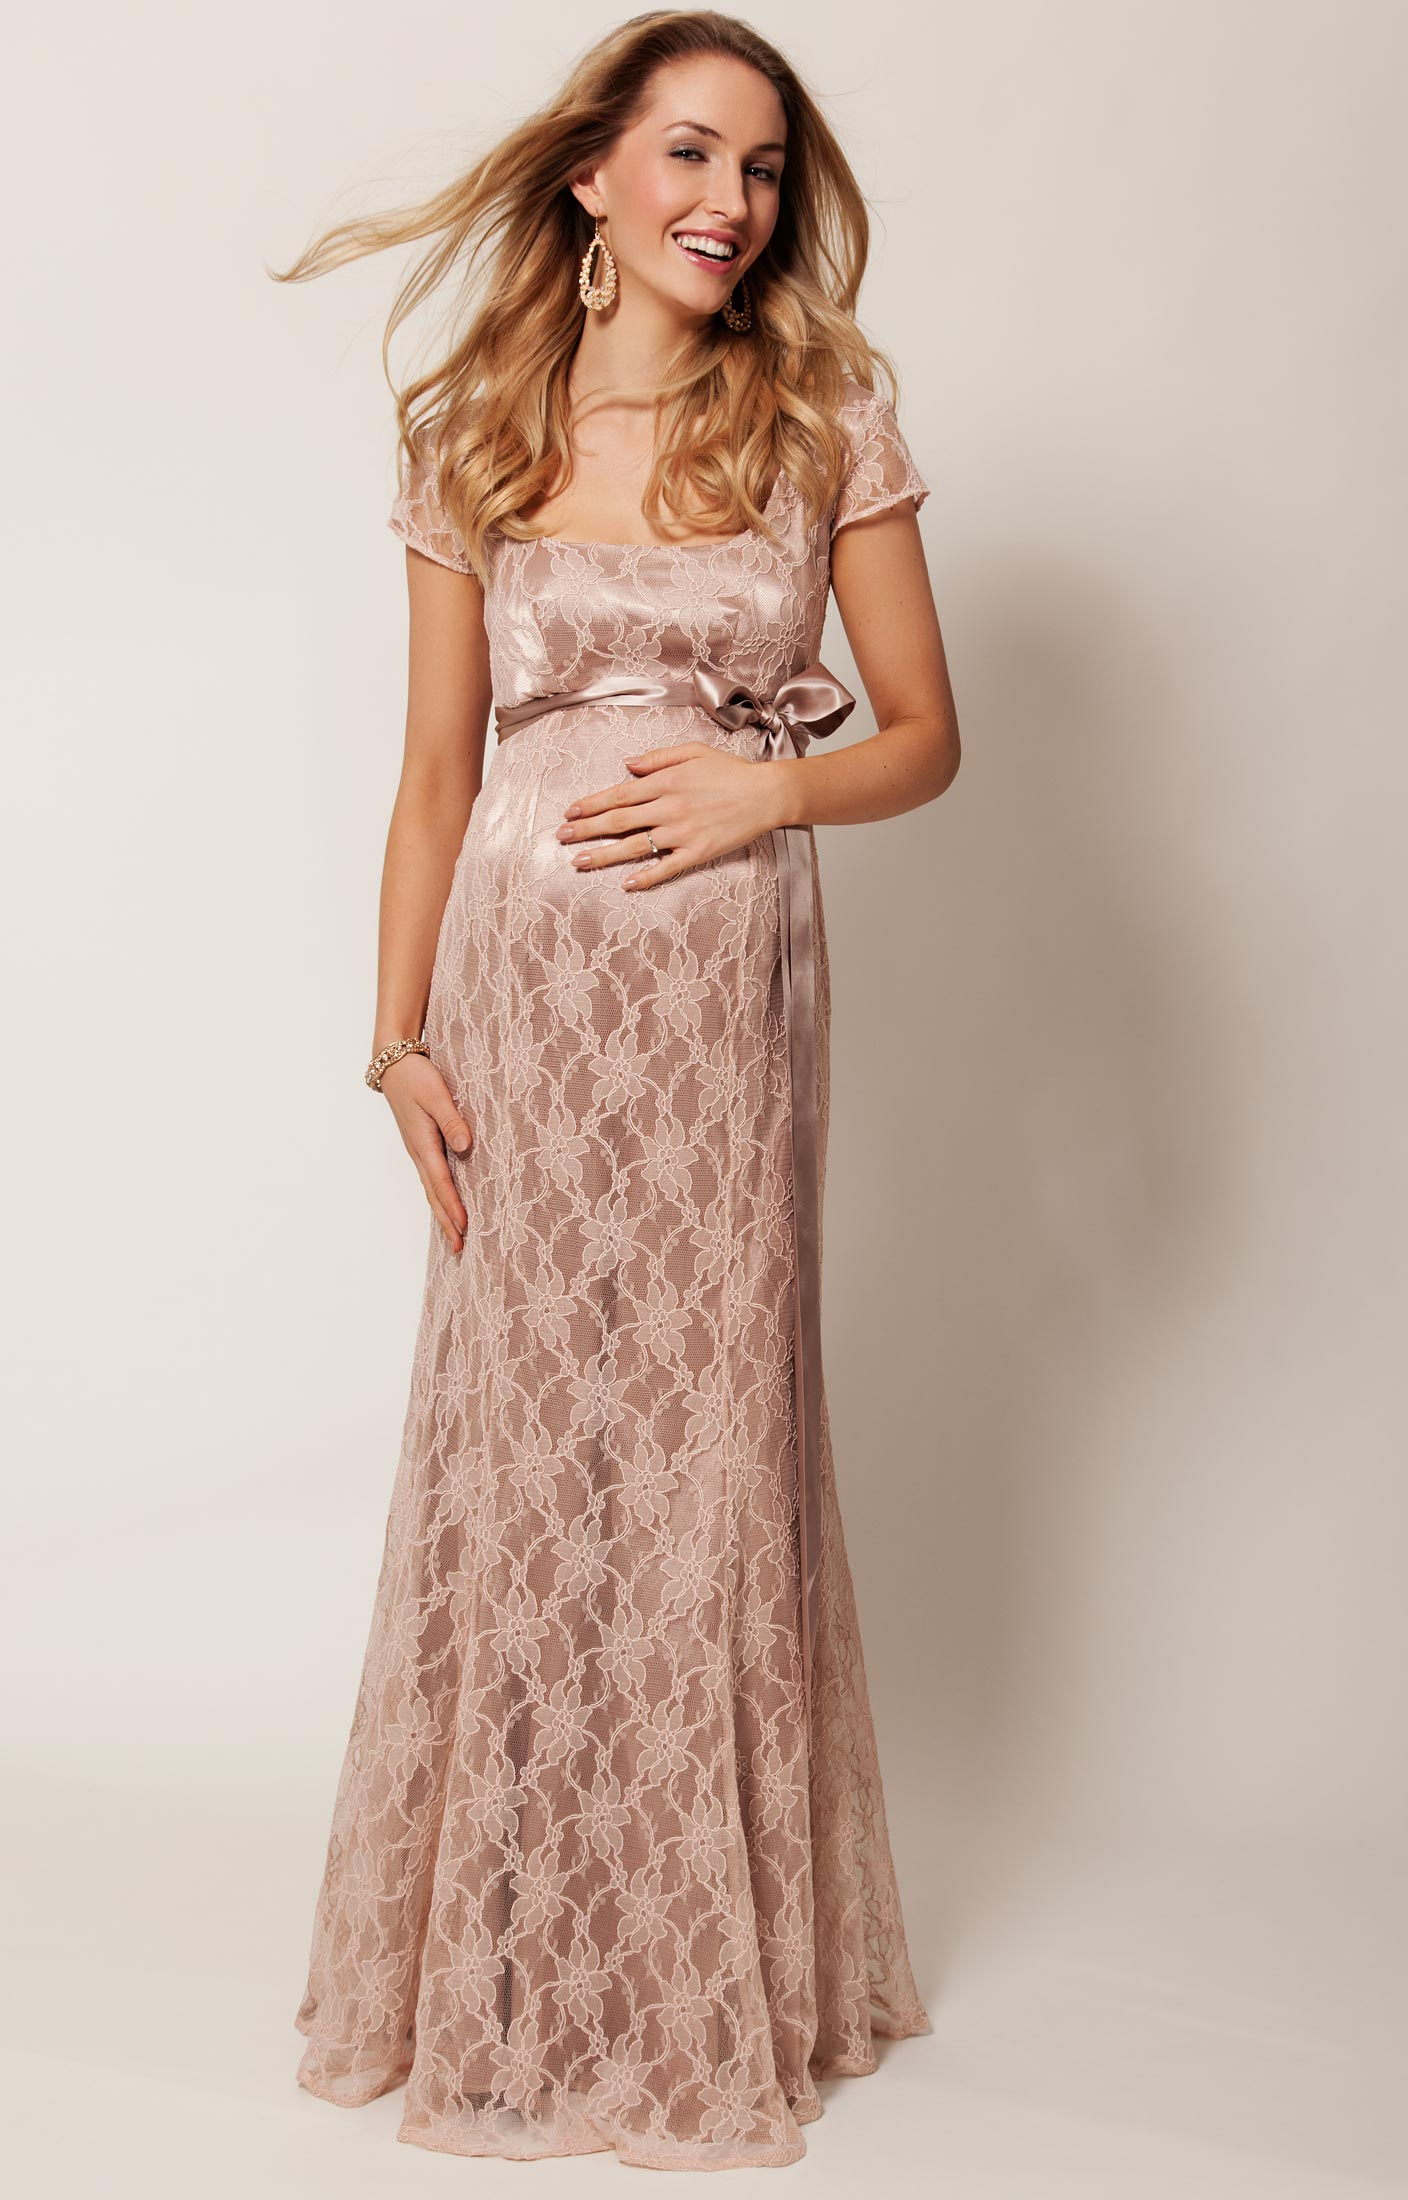 Stylish Eve Evening Maternity Dresses